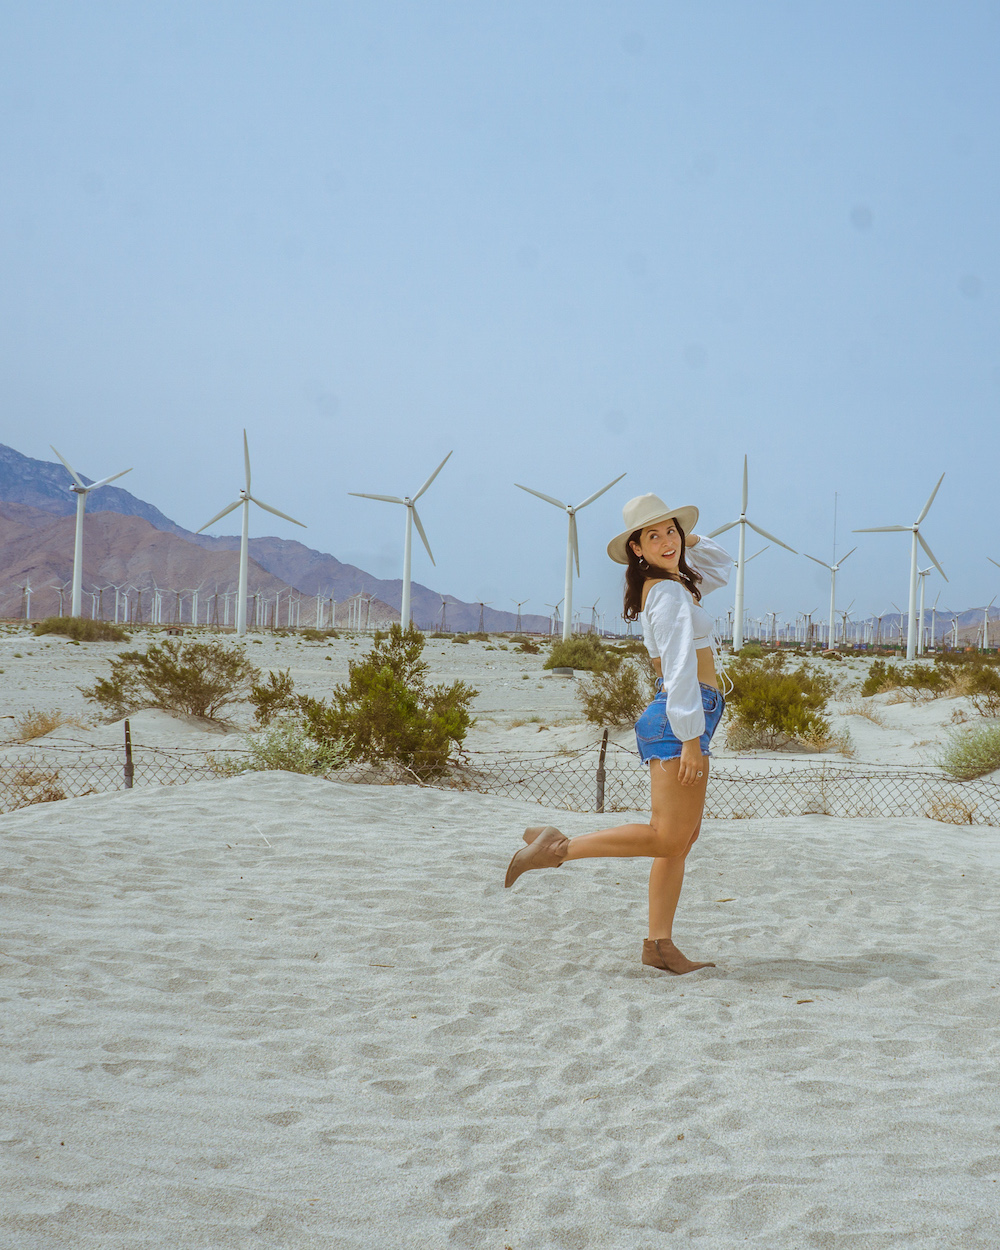 shooting at the palm springs windmills